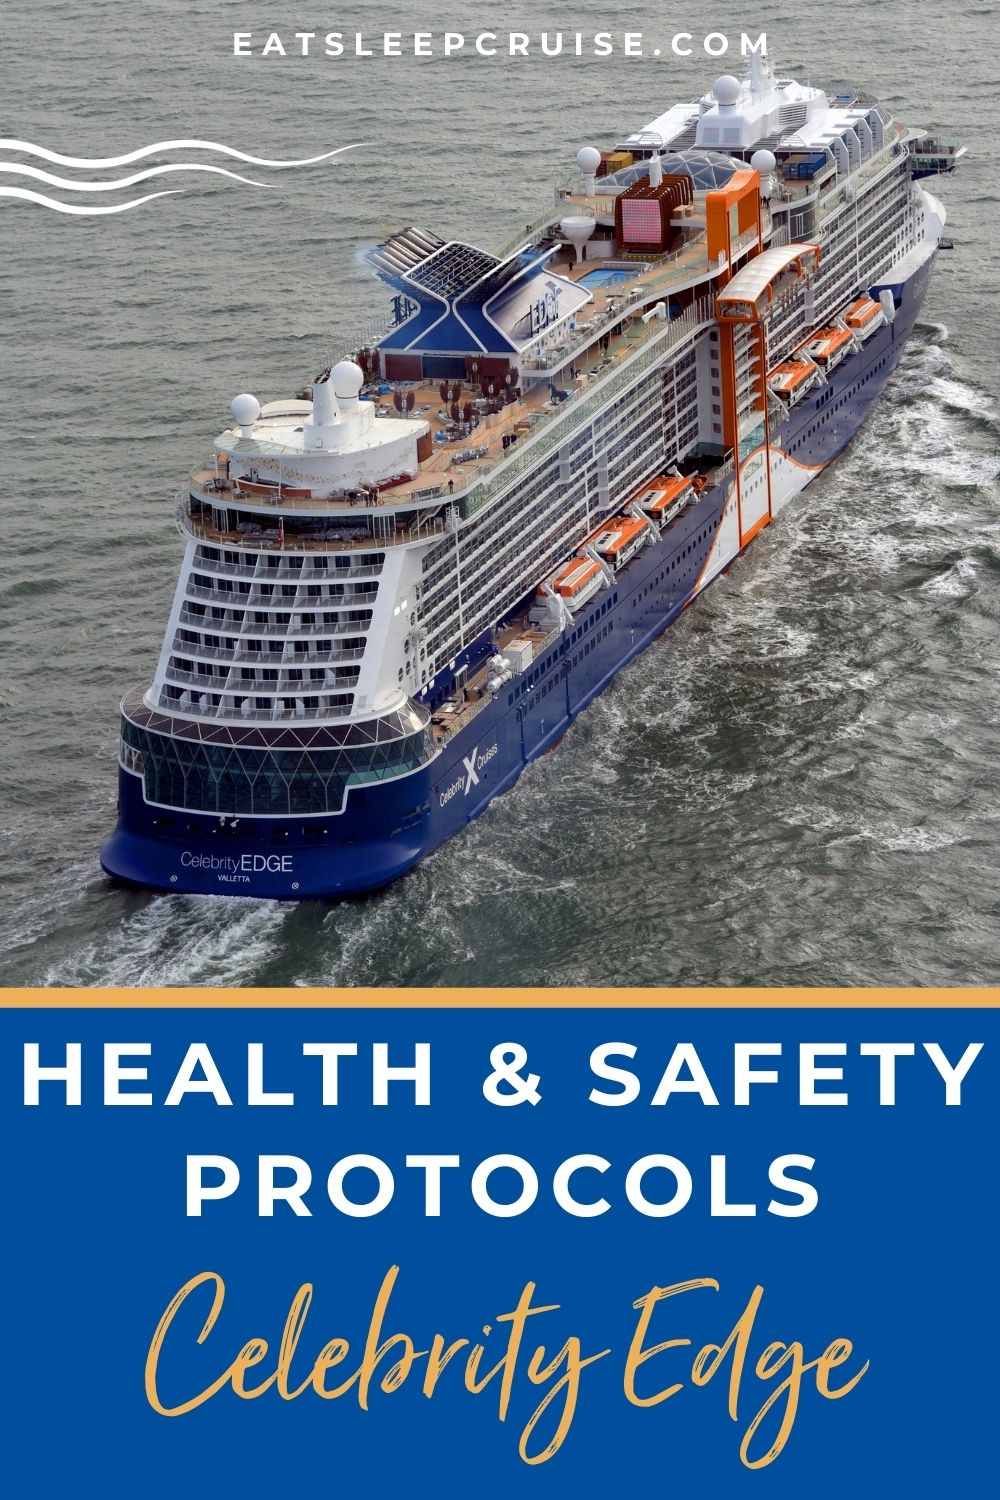 Celebrity Edge Health and Safety Protocols